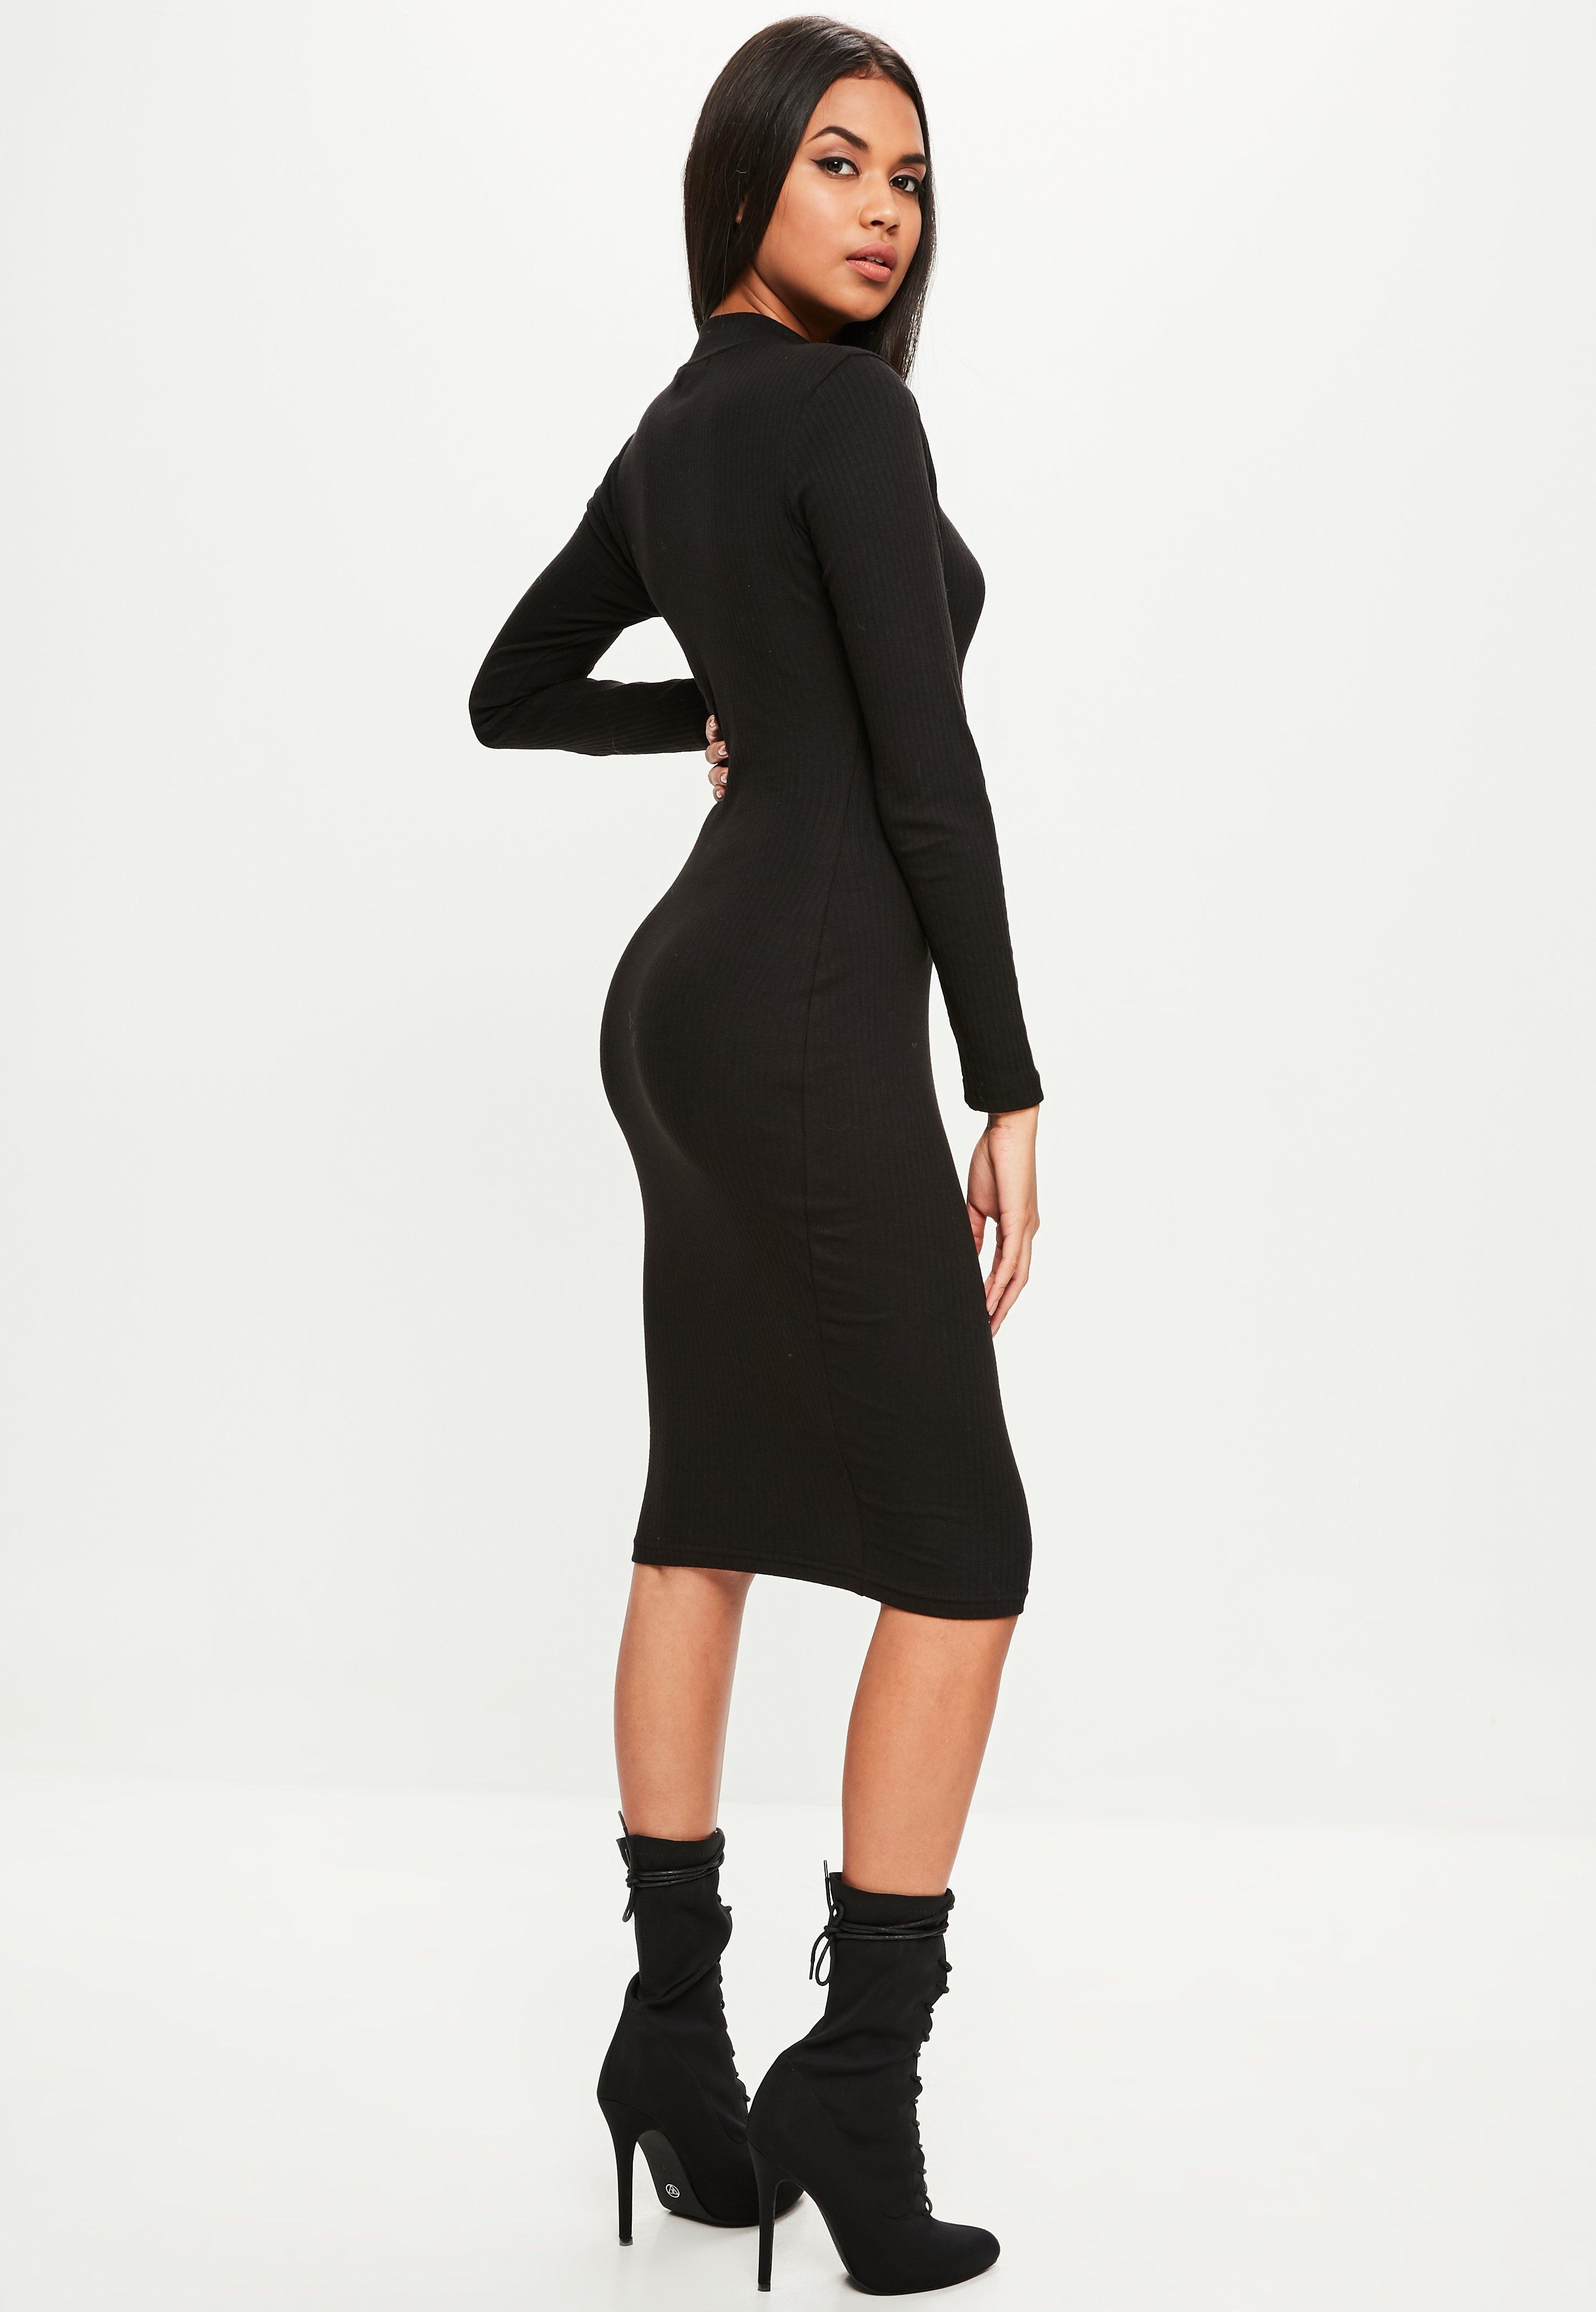 230f910ff7f45a Lyst - Missguided Black Long Sleeved High Neck Ribbed Midi Dress in ...